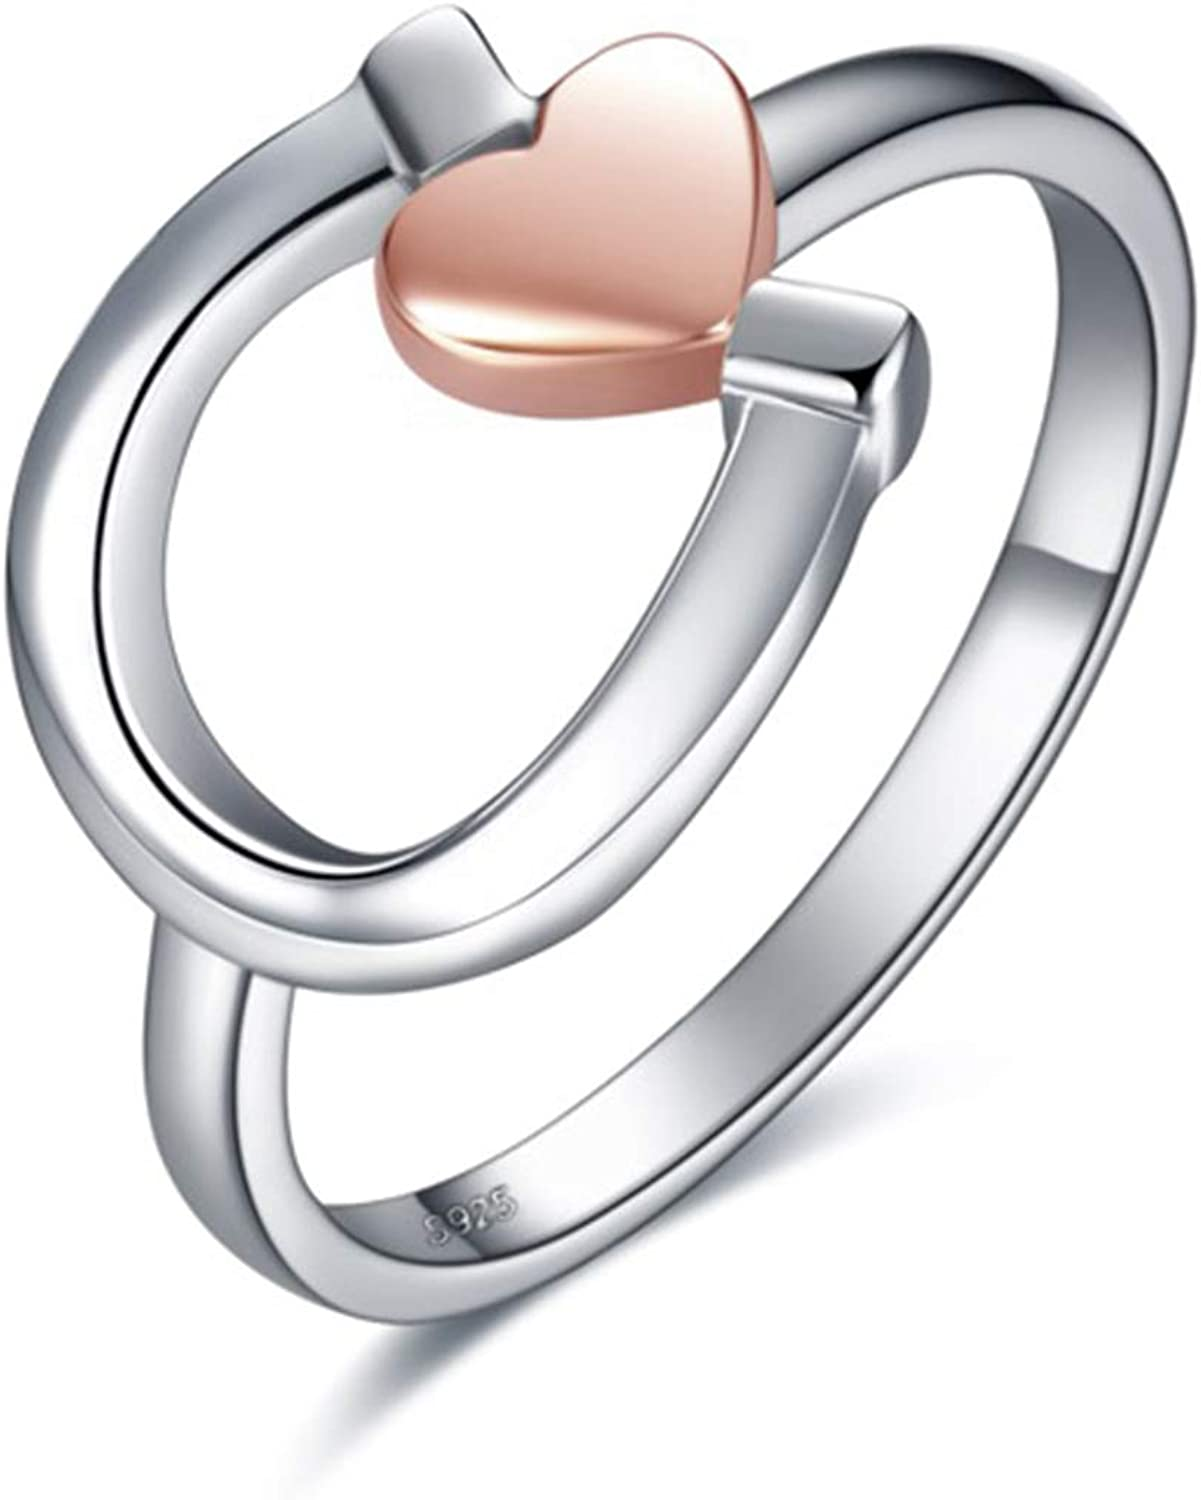 Horse Oklahoma City Mall Gifts Jewelry for Women low-pricing Silver Horseshoe Ri Sterling Lucky